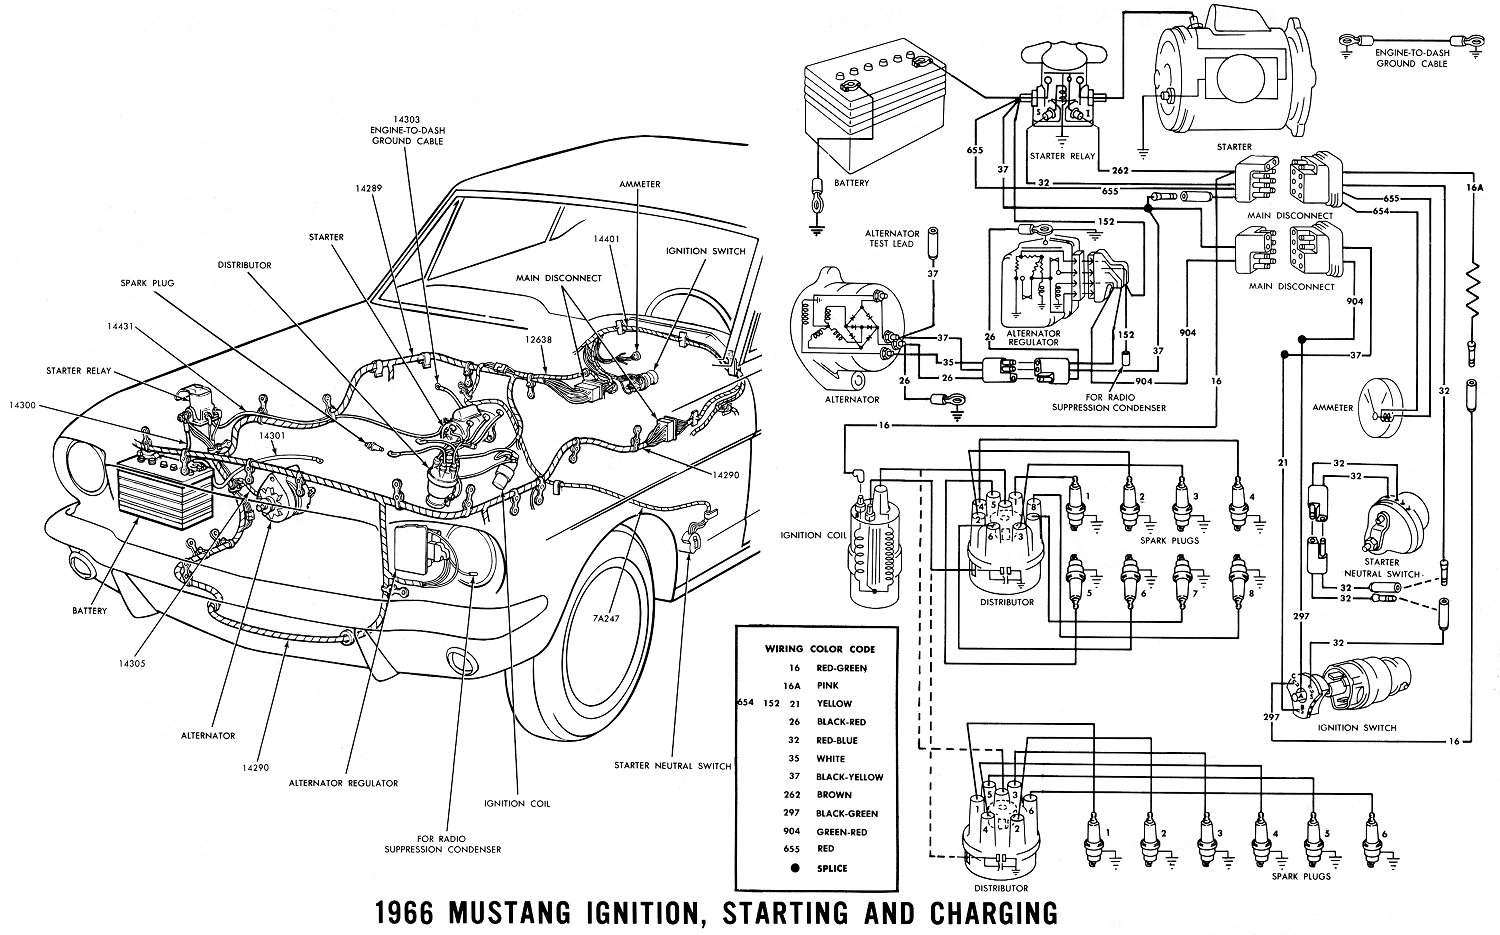 66ignit 1966 mustang wiring diagrams average joe restoration 71 mustang wiring diagram at bayanpartner.co